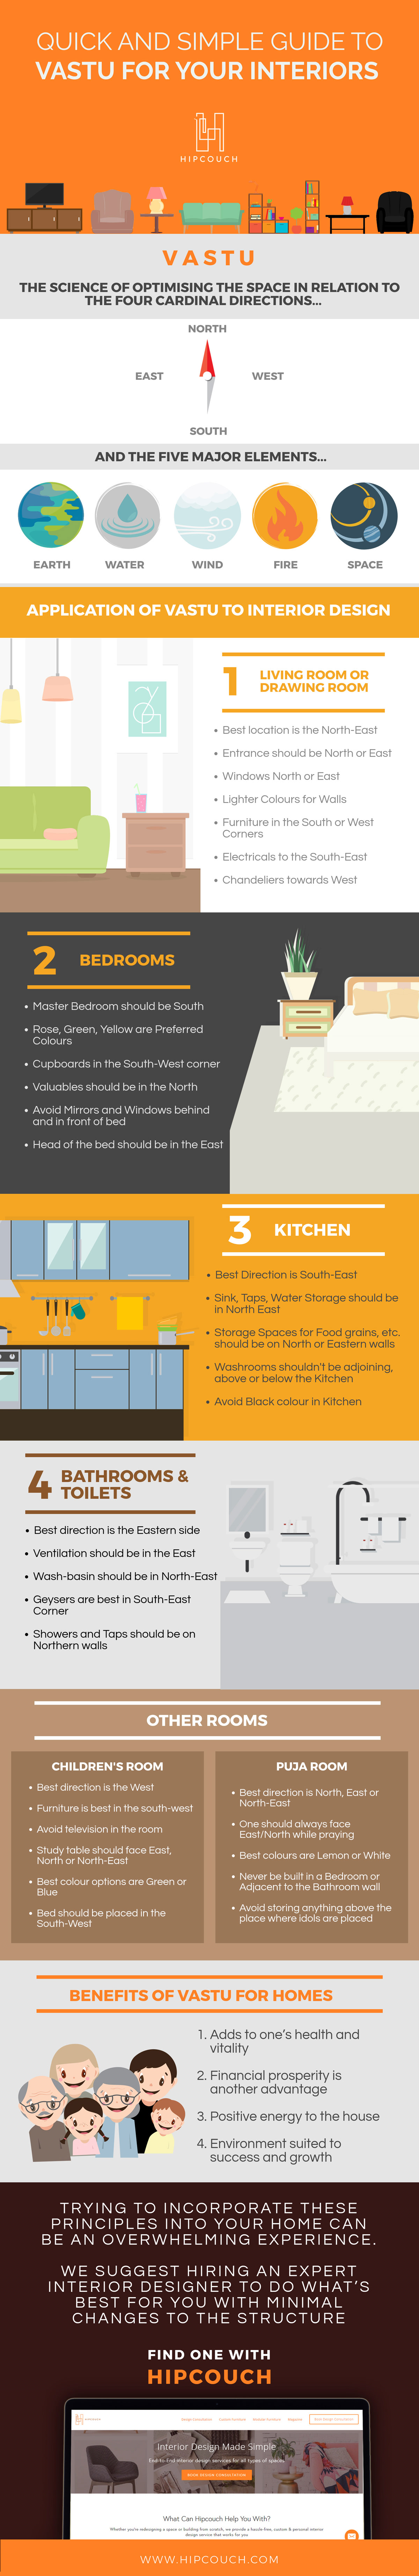 Most Simple Yet Useful Vastu Tips For the Perfect Interiors!